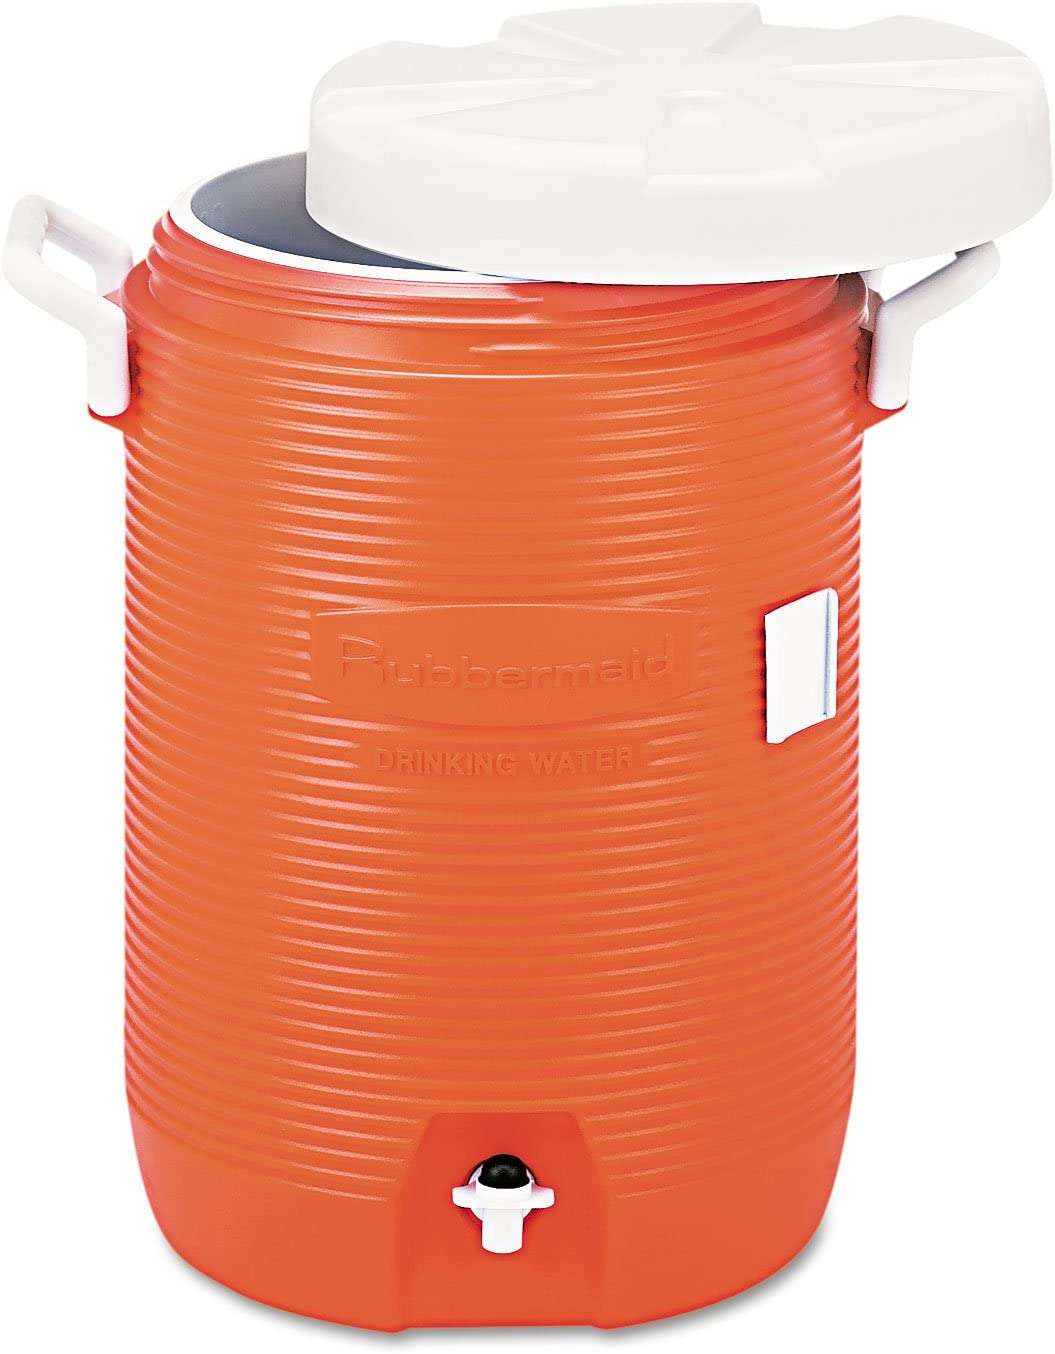 Rubbermaid Commercial 1840999 Insulated Water Cooler, 5 Gal, Orange, 10-Inch Dia x 19 1/2-Inch H, Polyethylene